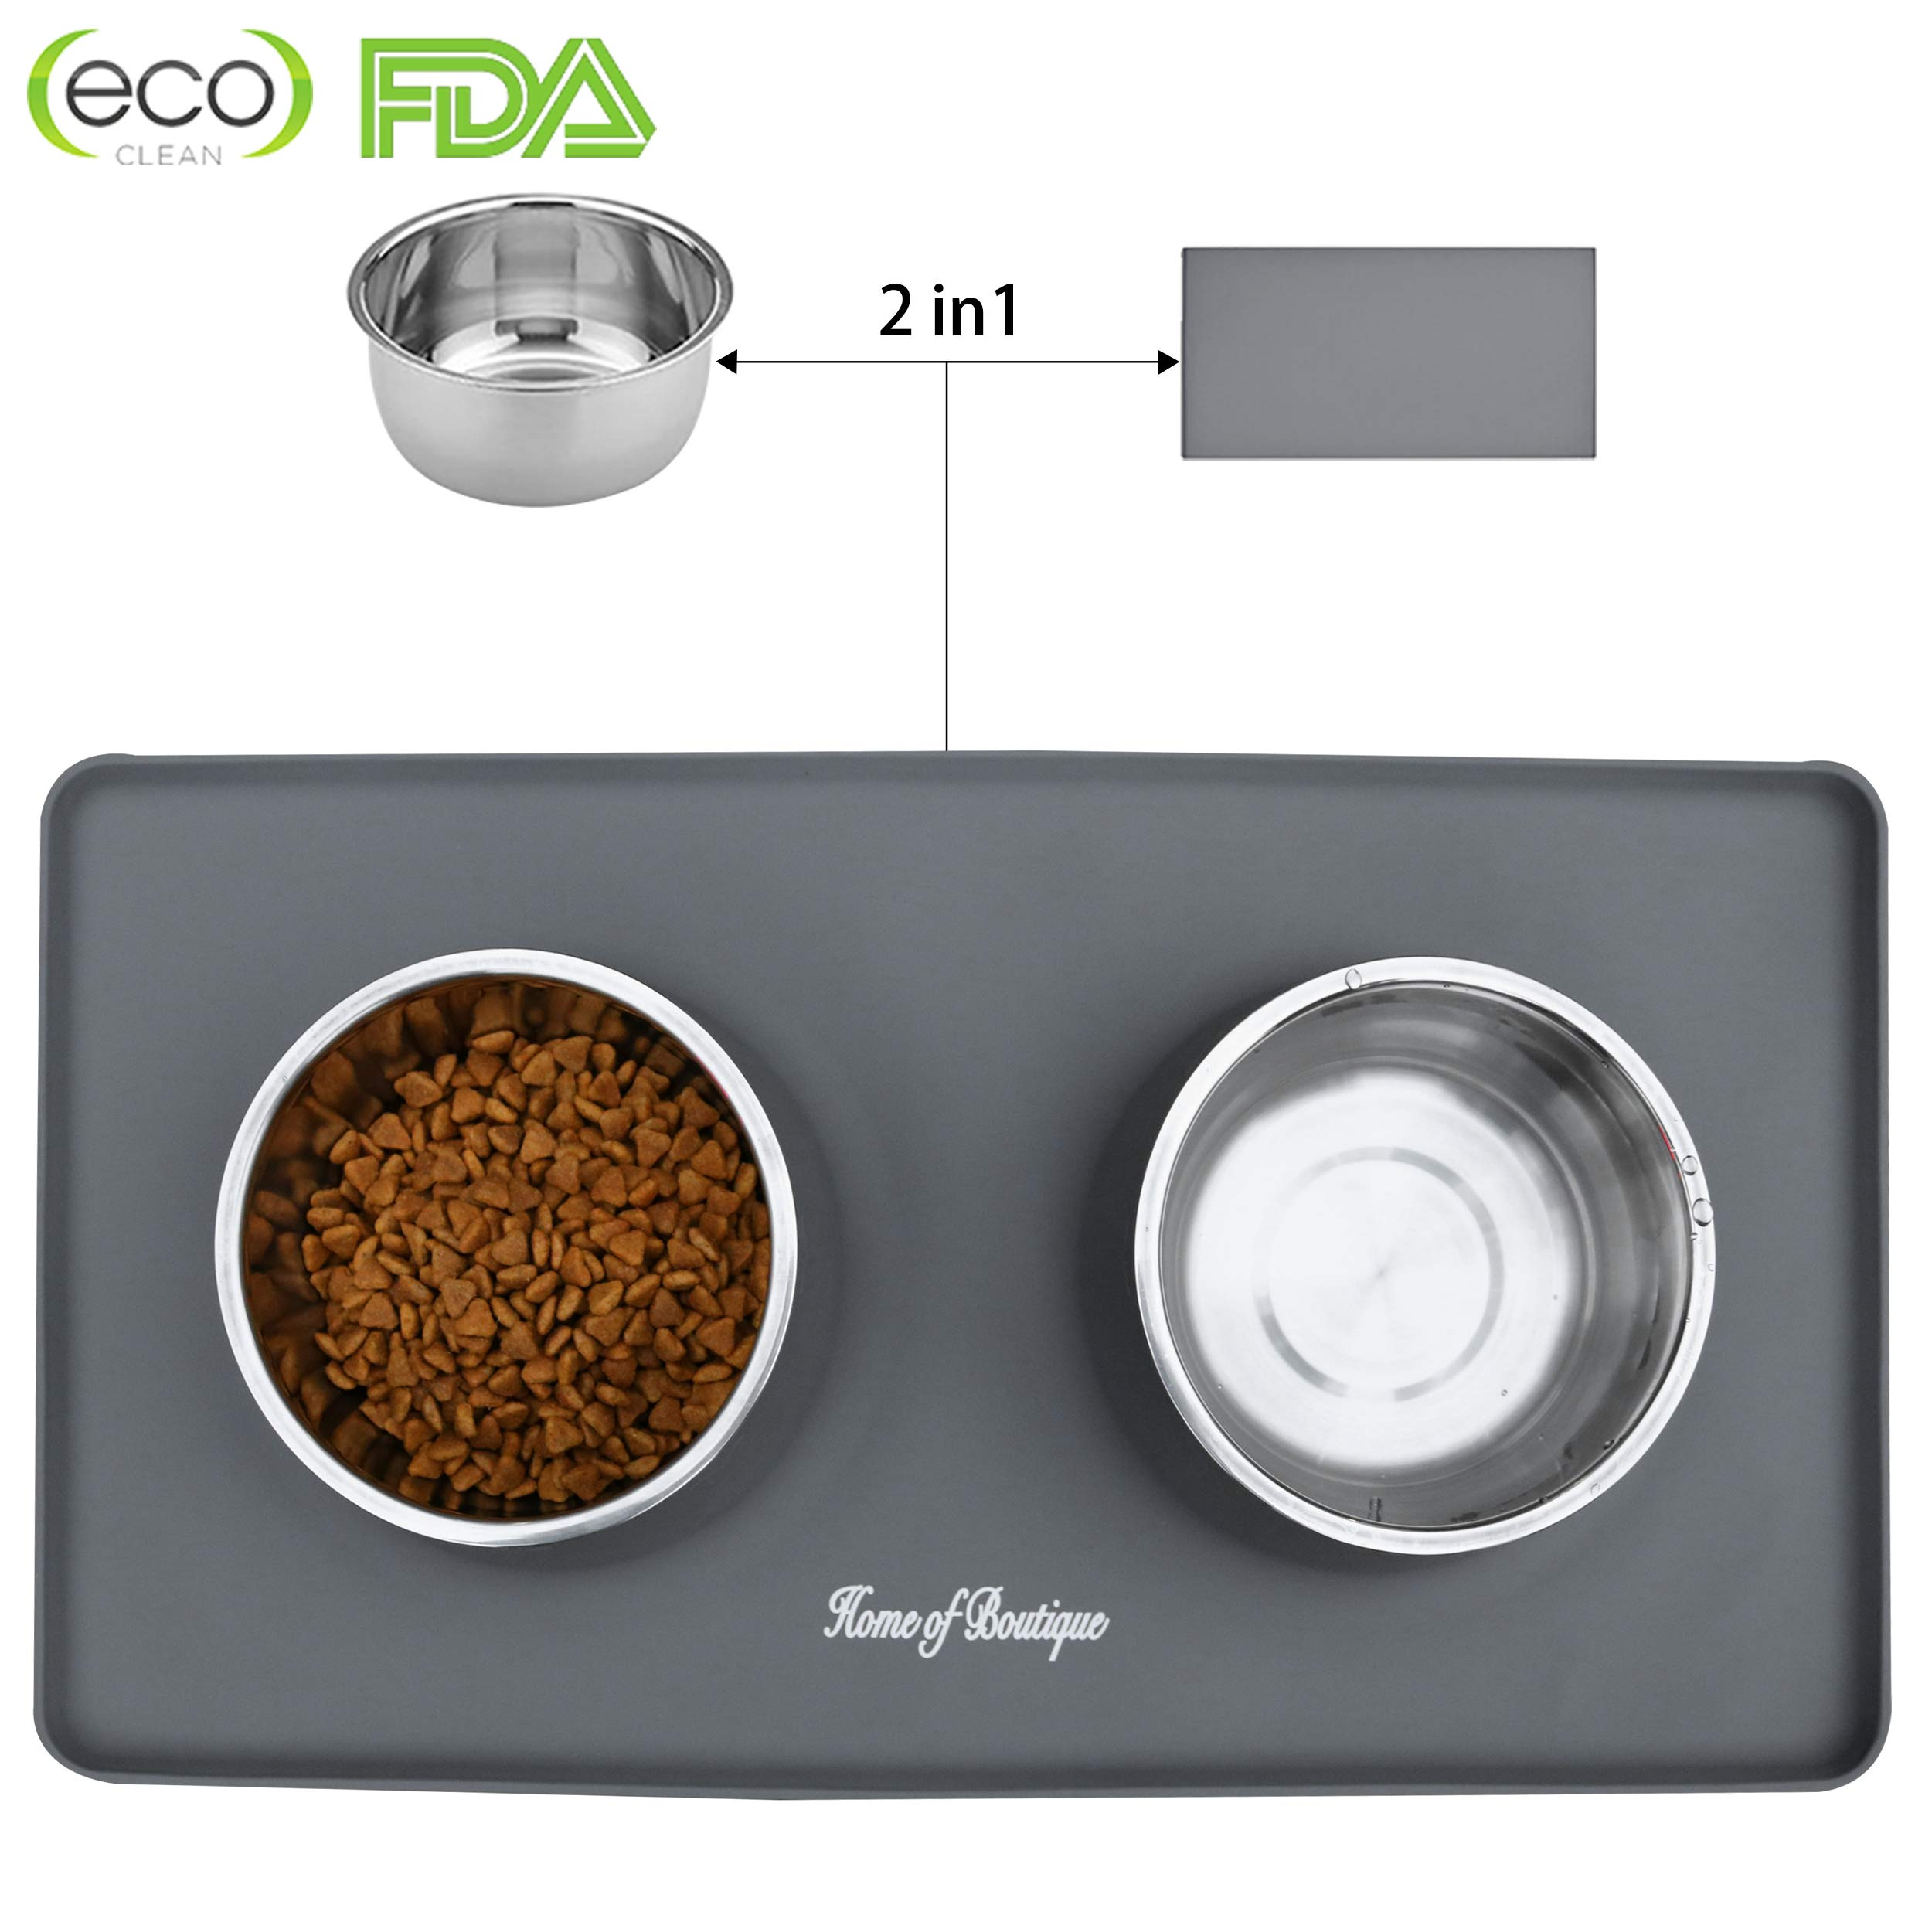 Home of Boutique Dog Bowls, Stainless Steel Pet Food Bowl, Cat Water Bowls with No-Spill Anti-Slip Silicone Mat for Large or Medium Dogs or Cats, Set of 2 Bowls (L, Gray)